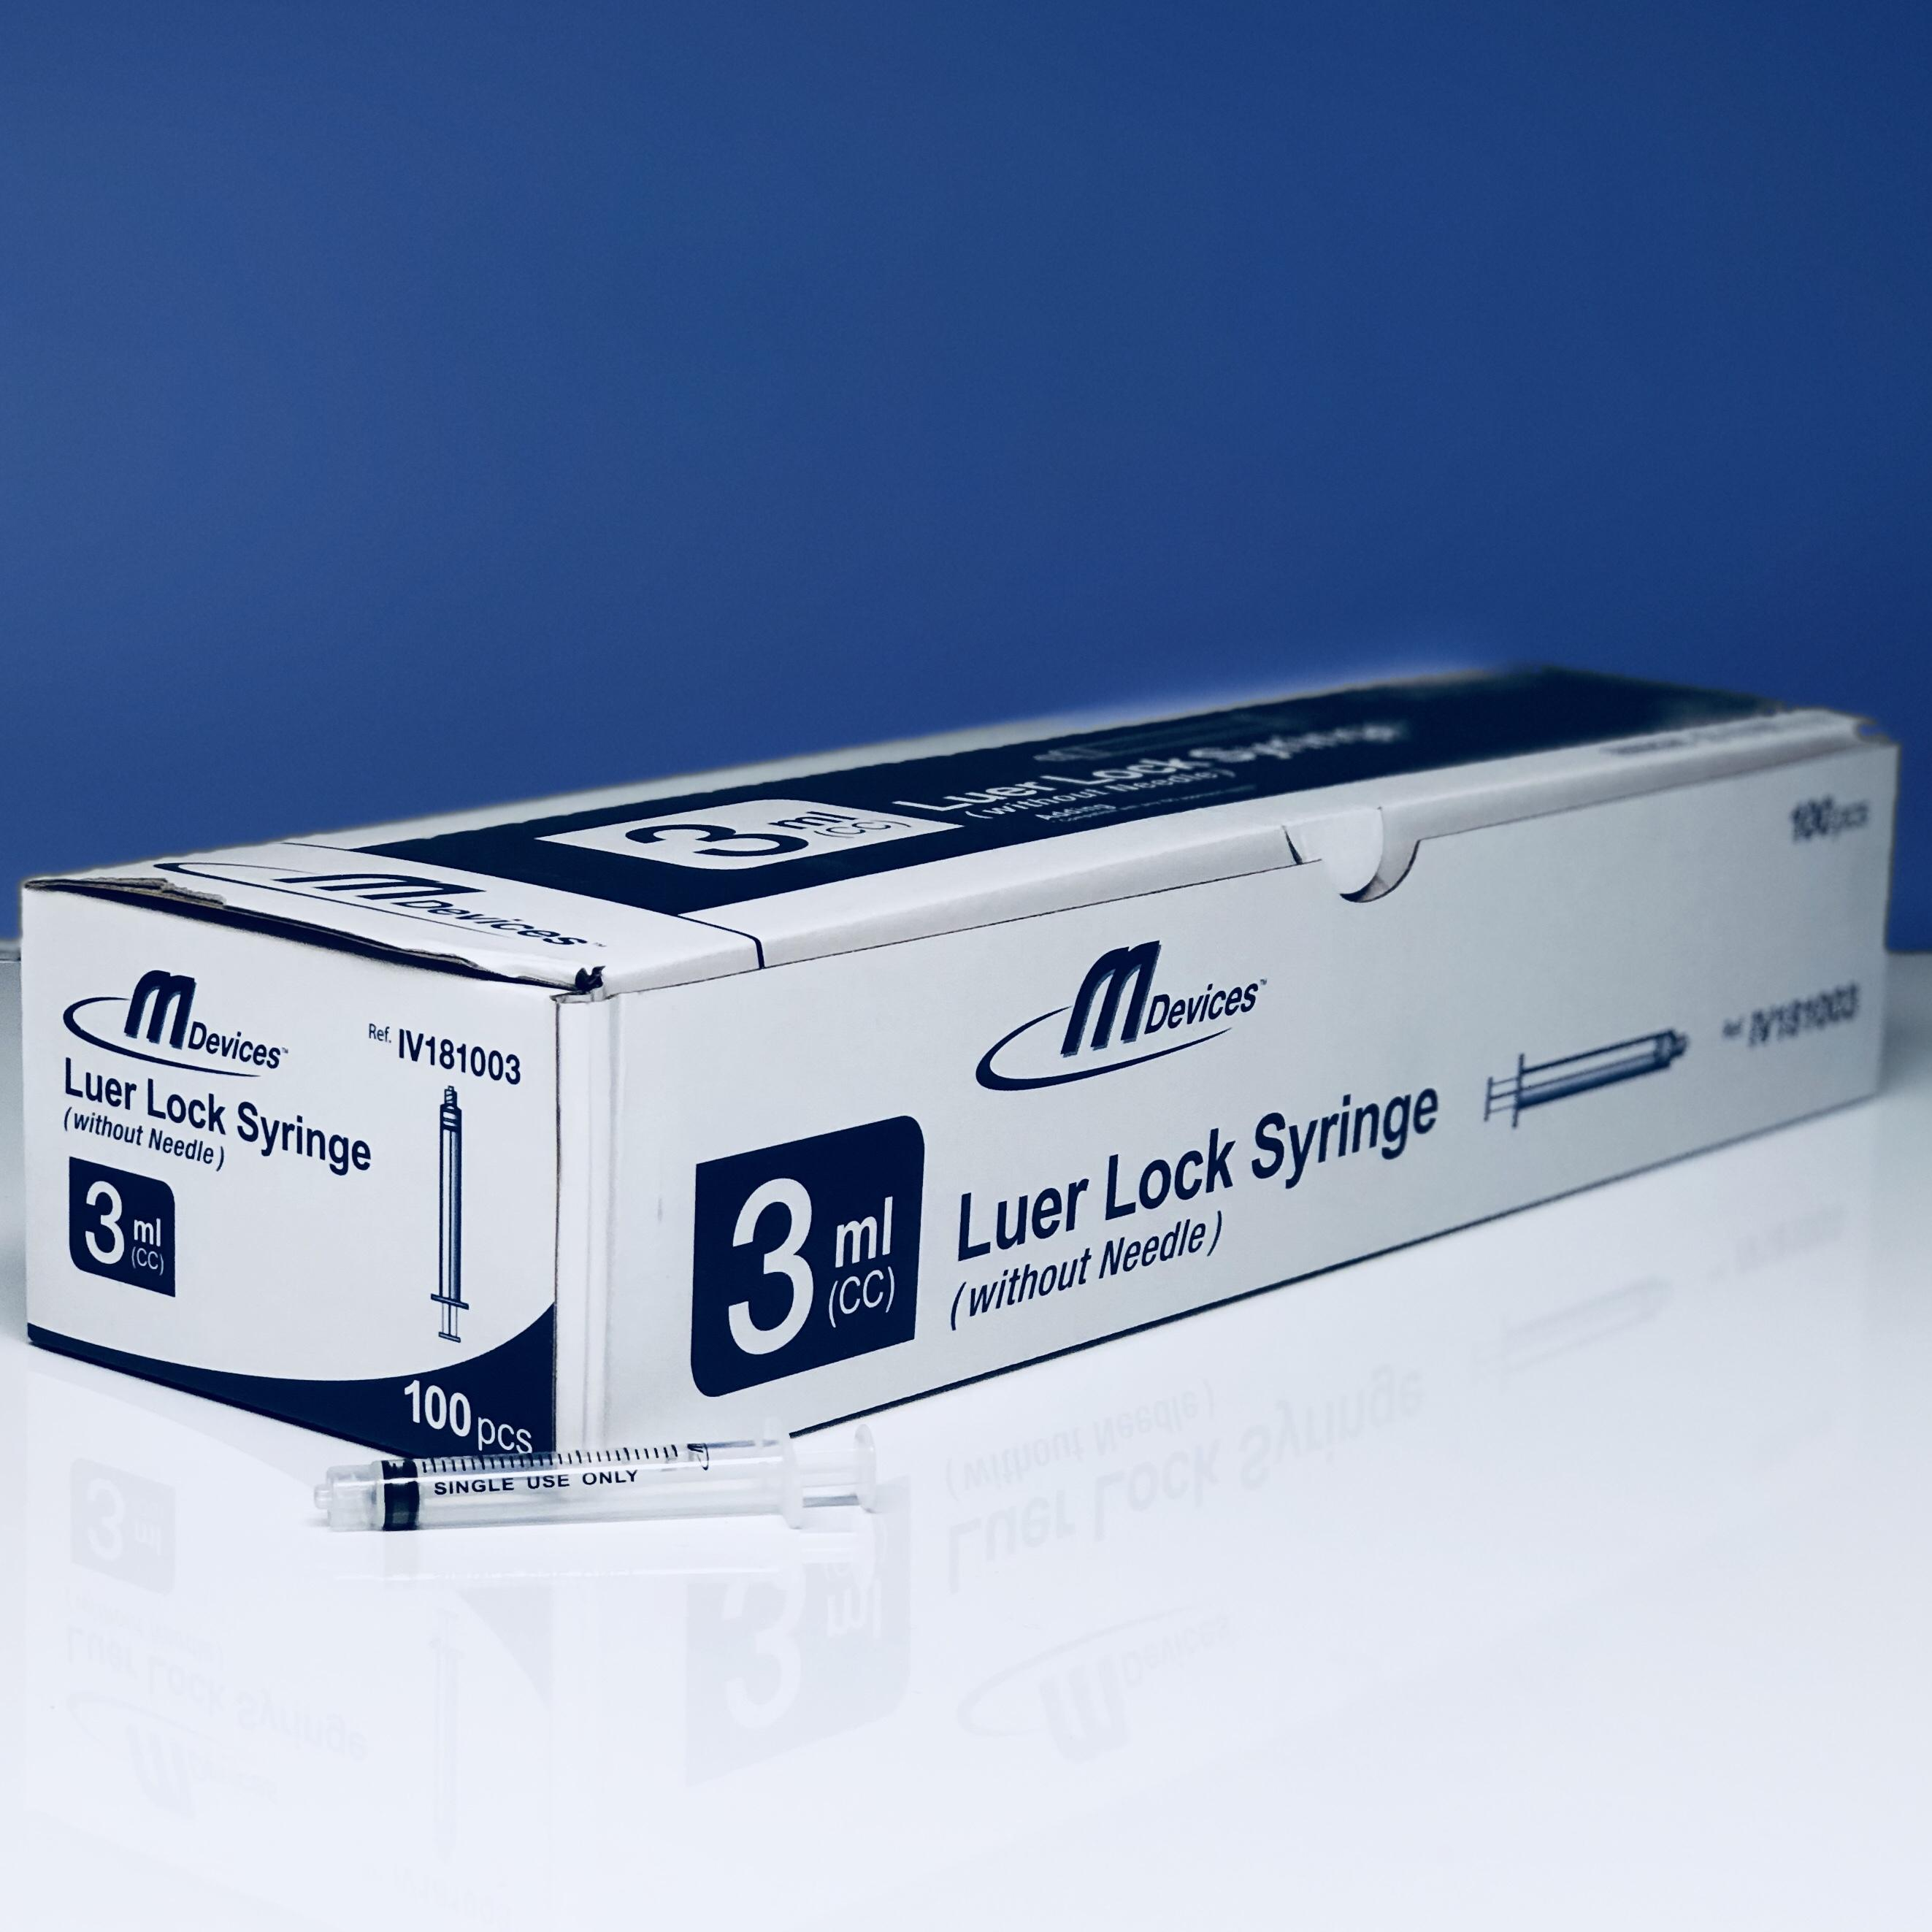 M Devices Syringe 3ml Leur Lock, Box/100